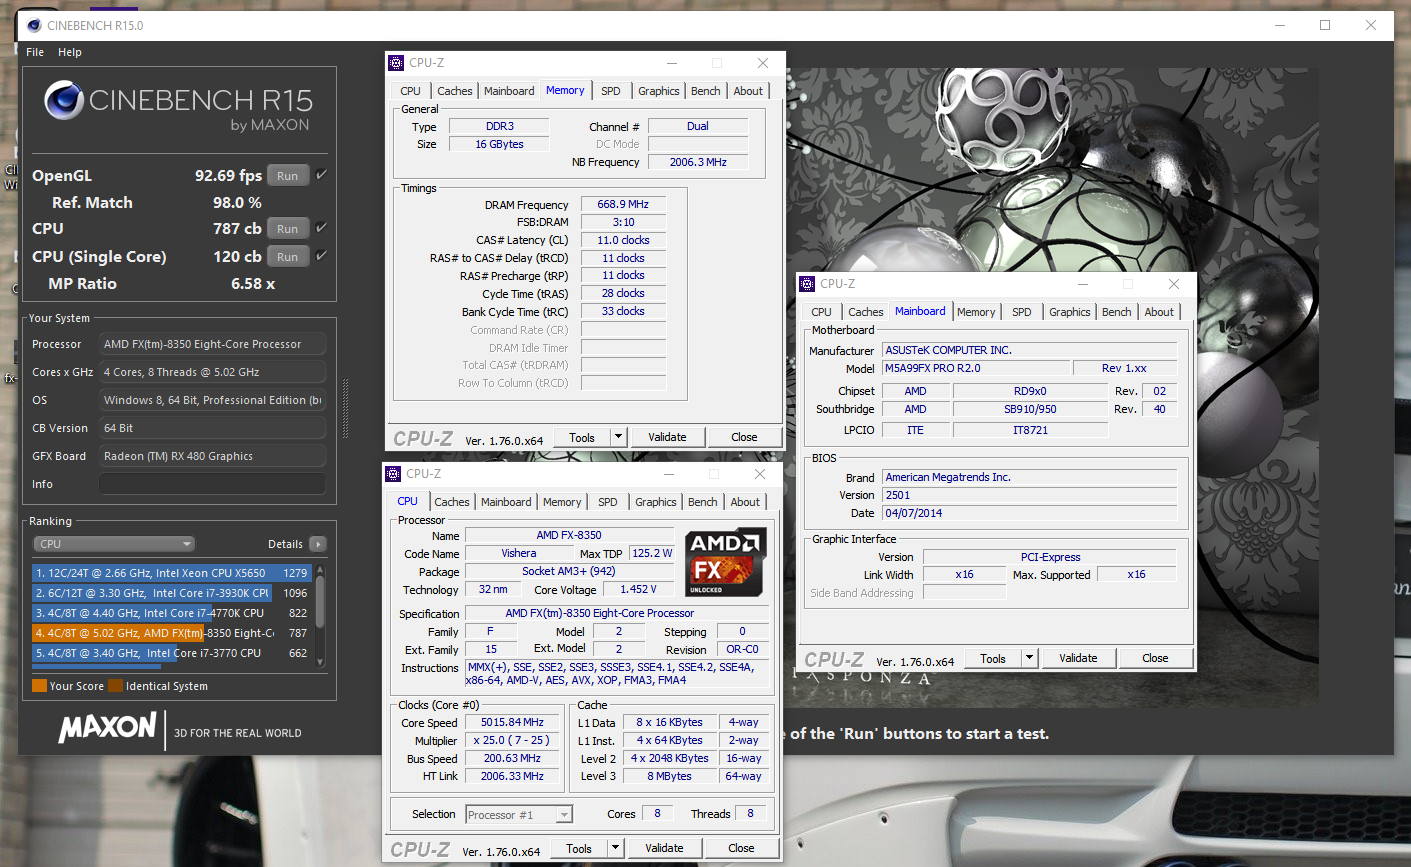 Post Your Cinebench R15 R115 2003 Scores Over 1000 Submissions Razer Blackwidow T2 2014 Jnjkh